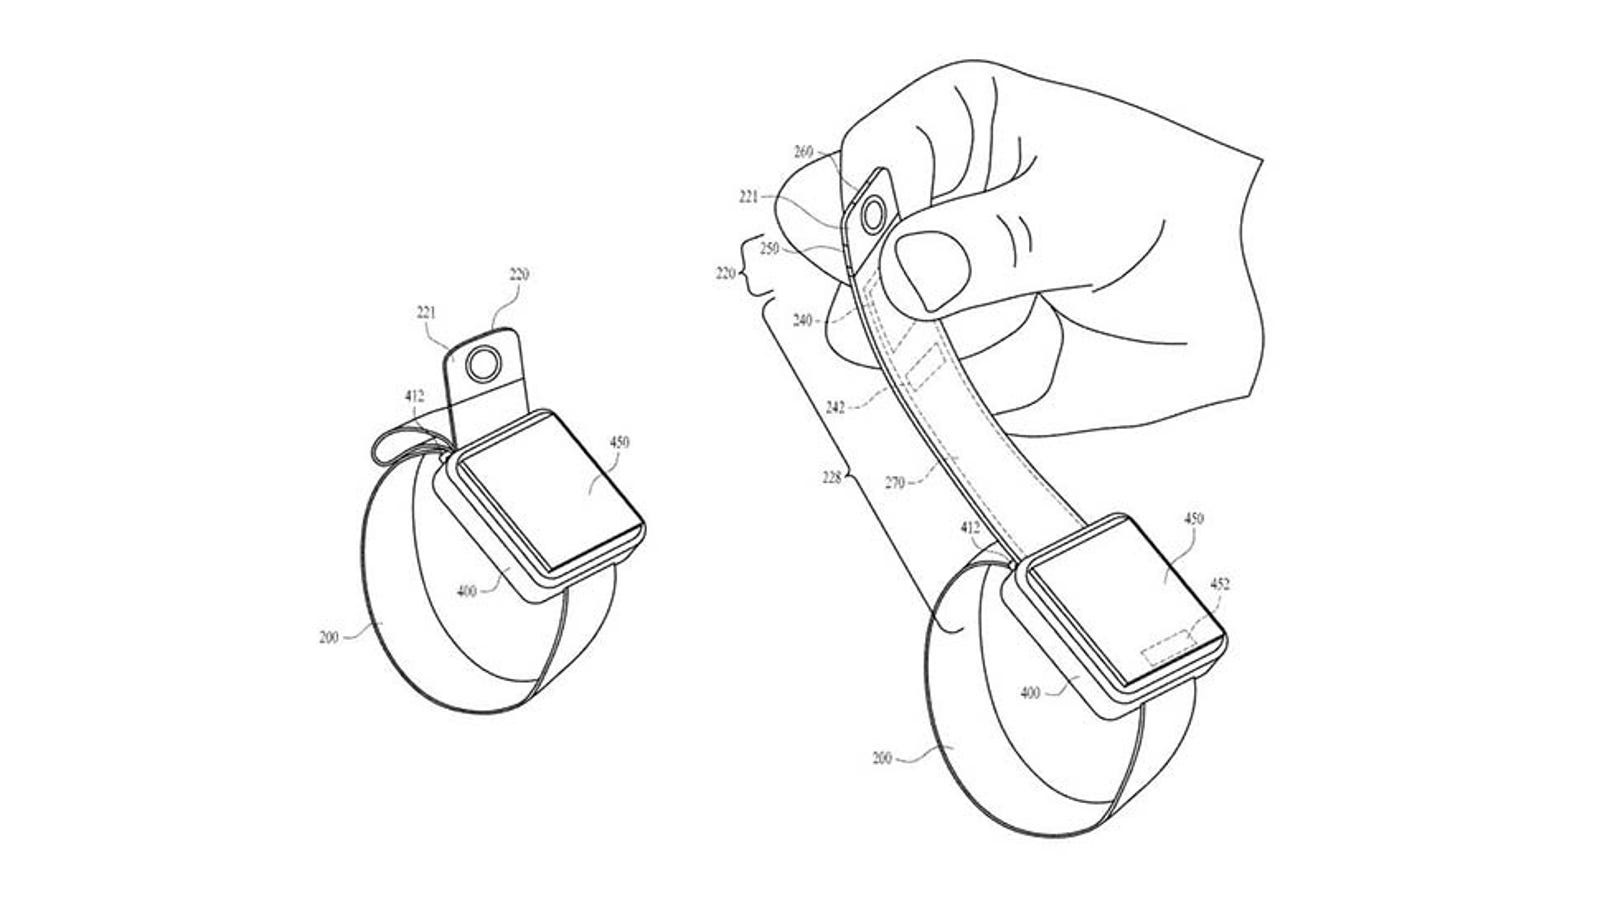 QnA VBage Check Out Apple's Ridiculous Patent for Adding a Camera to the Apple Watch